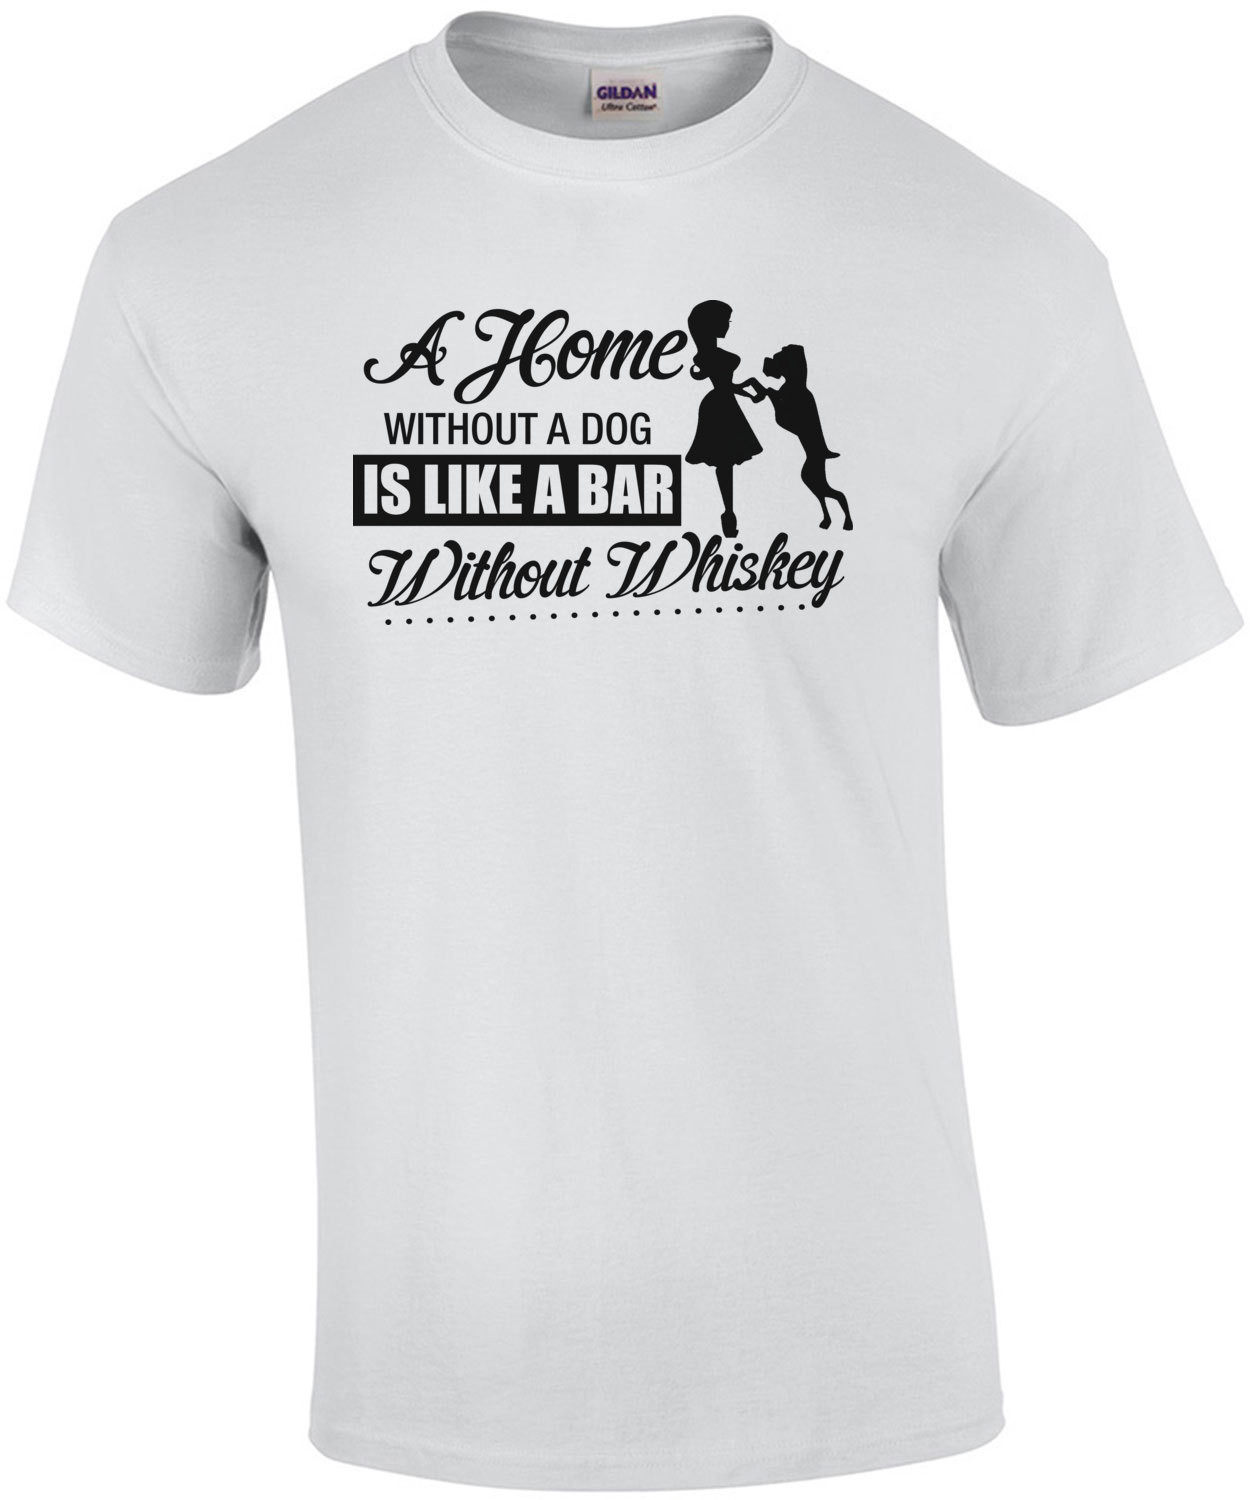 A Home Without A Dog Is Like A Bar Without Whiskey T-Shirt